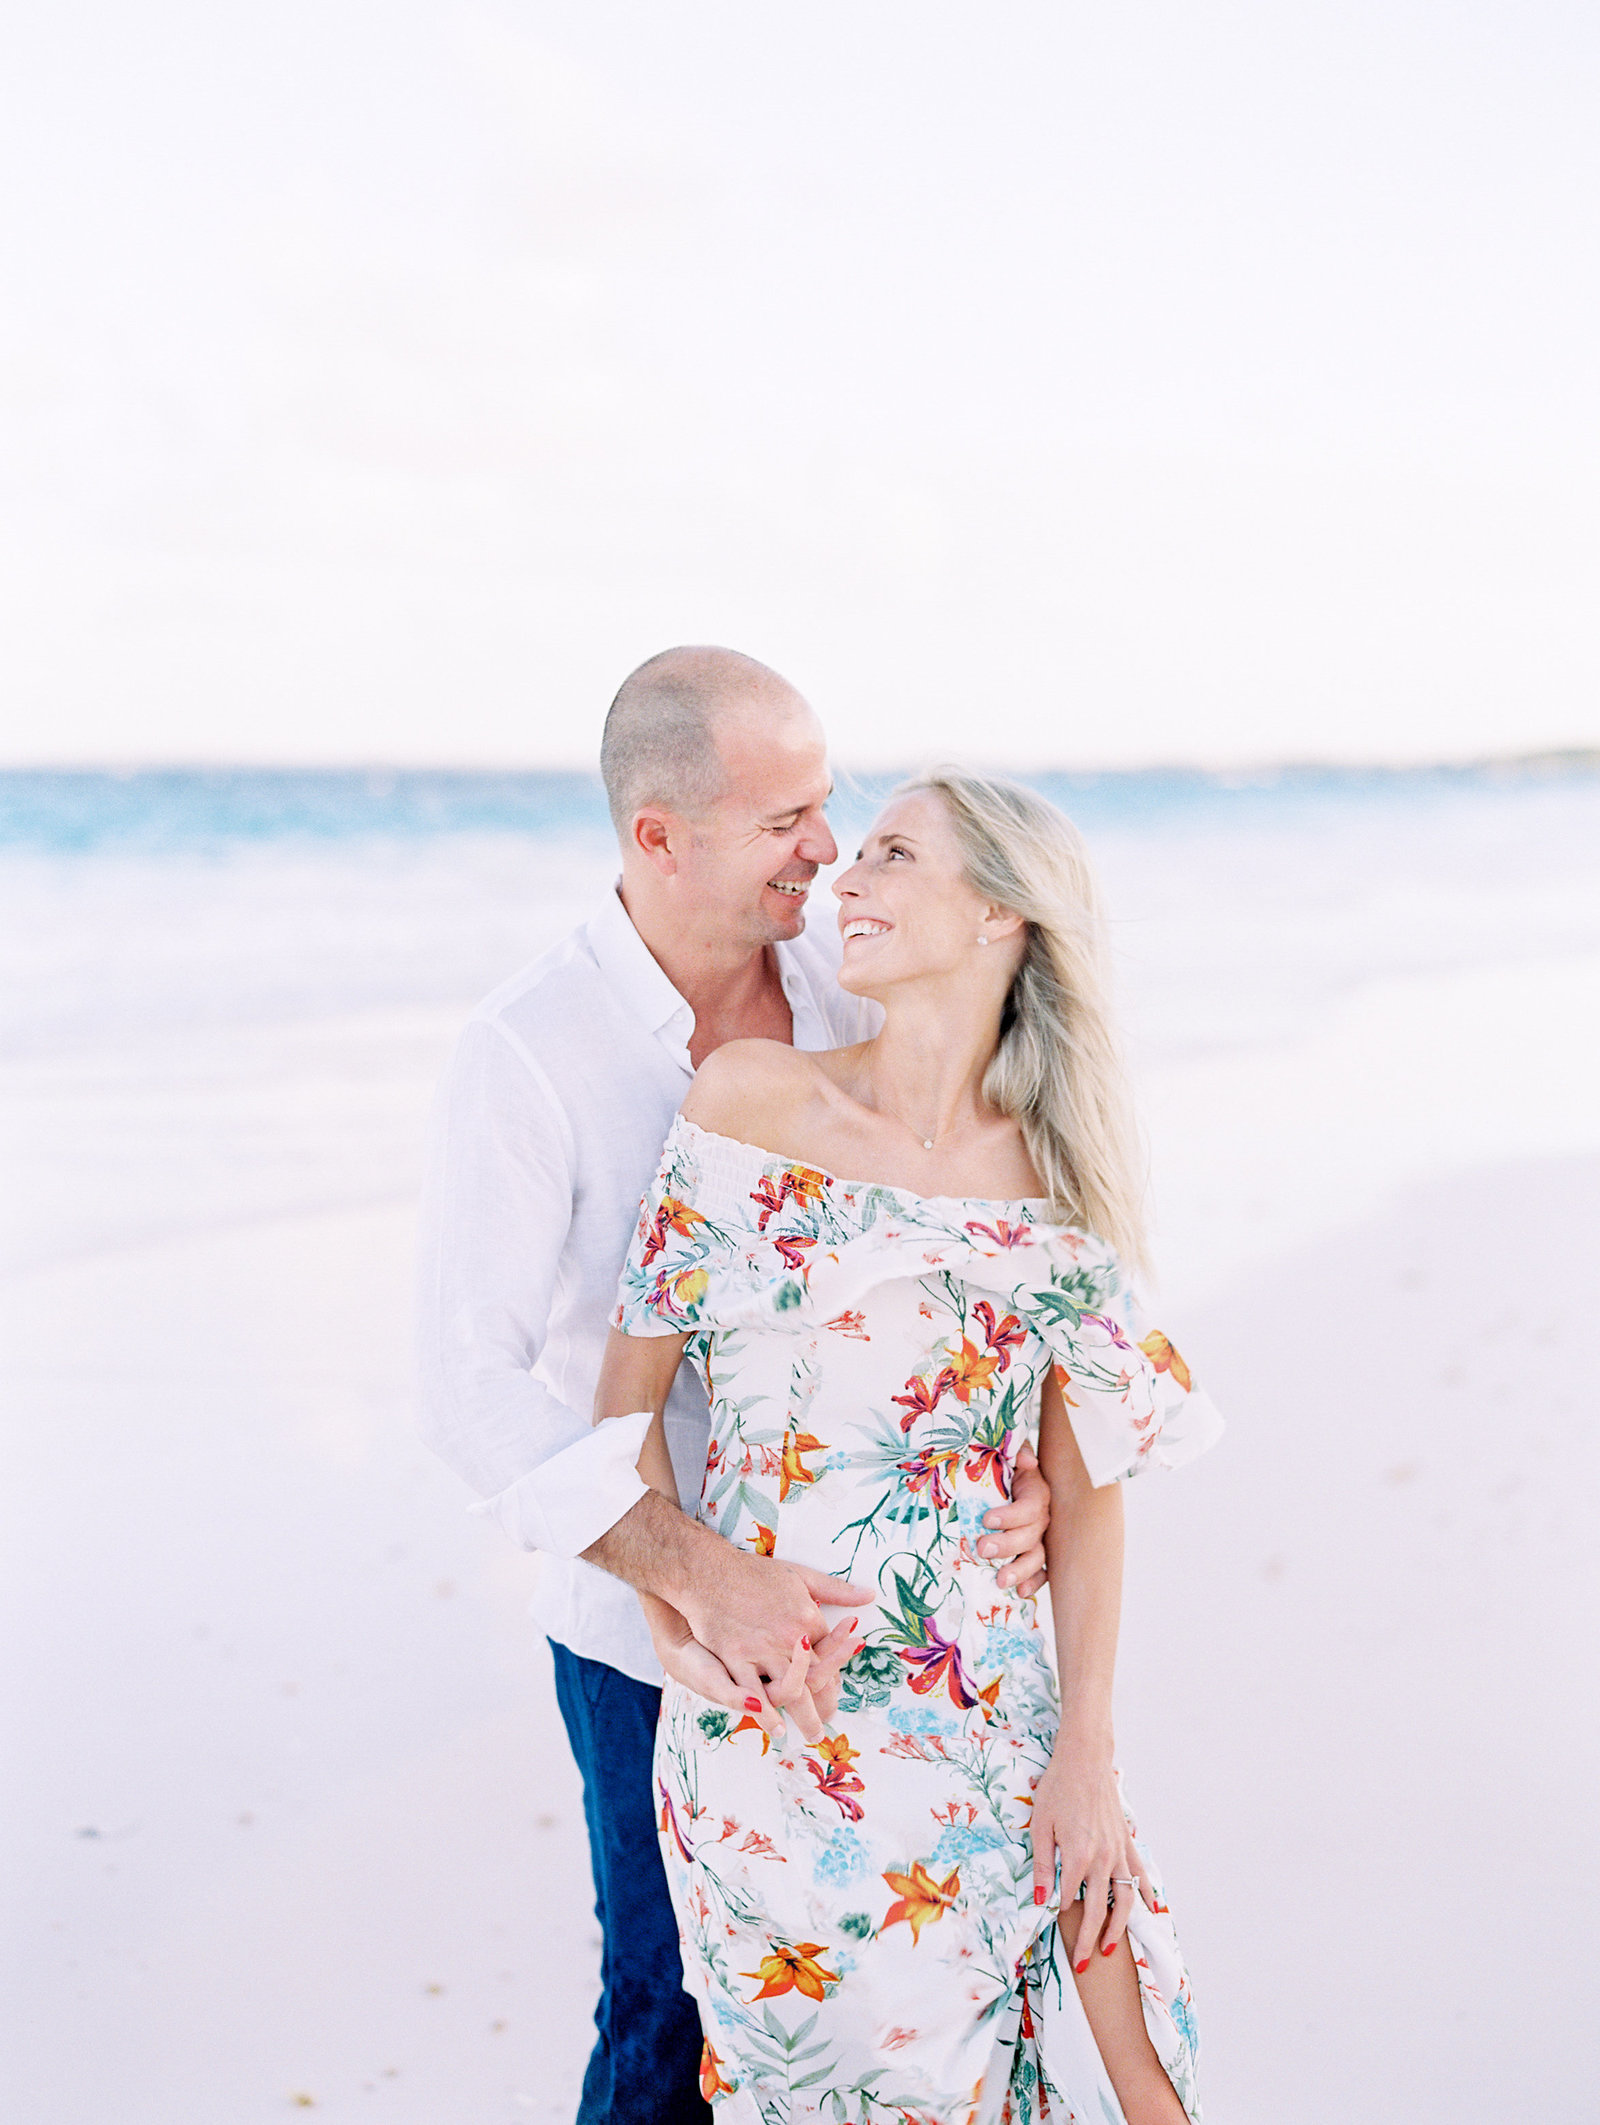 20171109-Pura-Soul-Photo-Engagement-Bahamas-Gillian-Eddy-Film-16